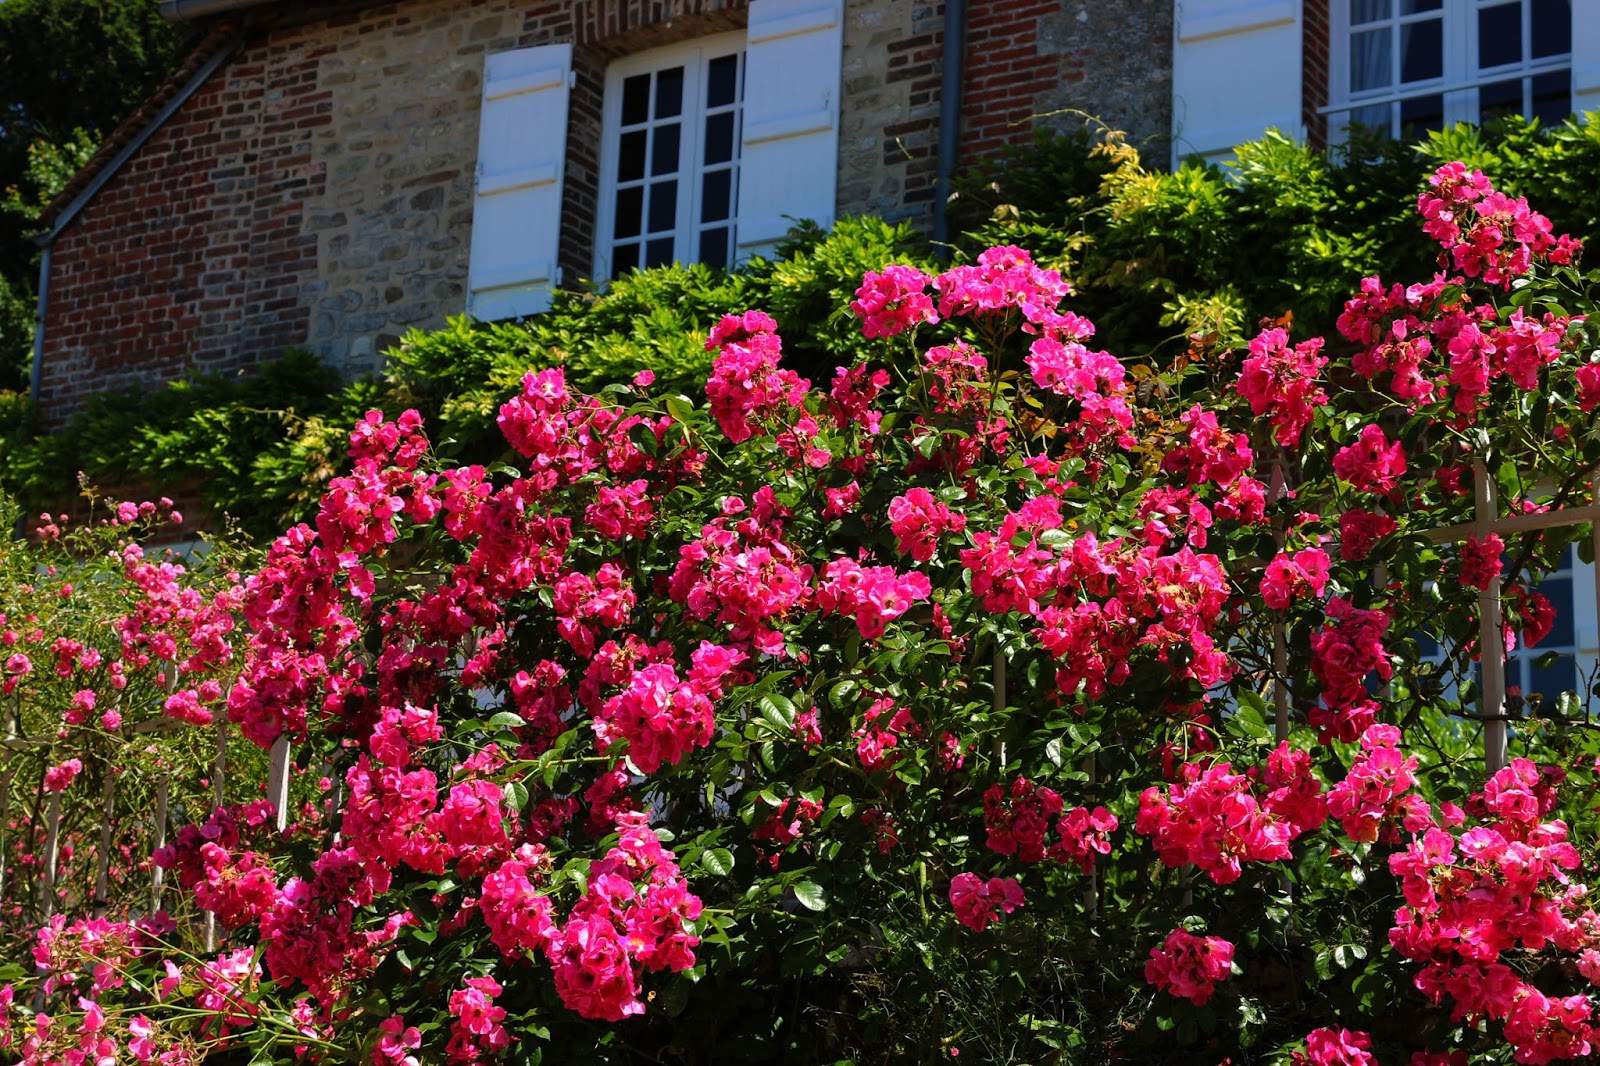 Photography, Landscape, Countryside, Summer, Style, Flowers